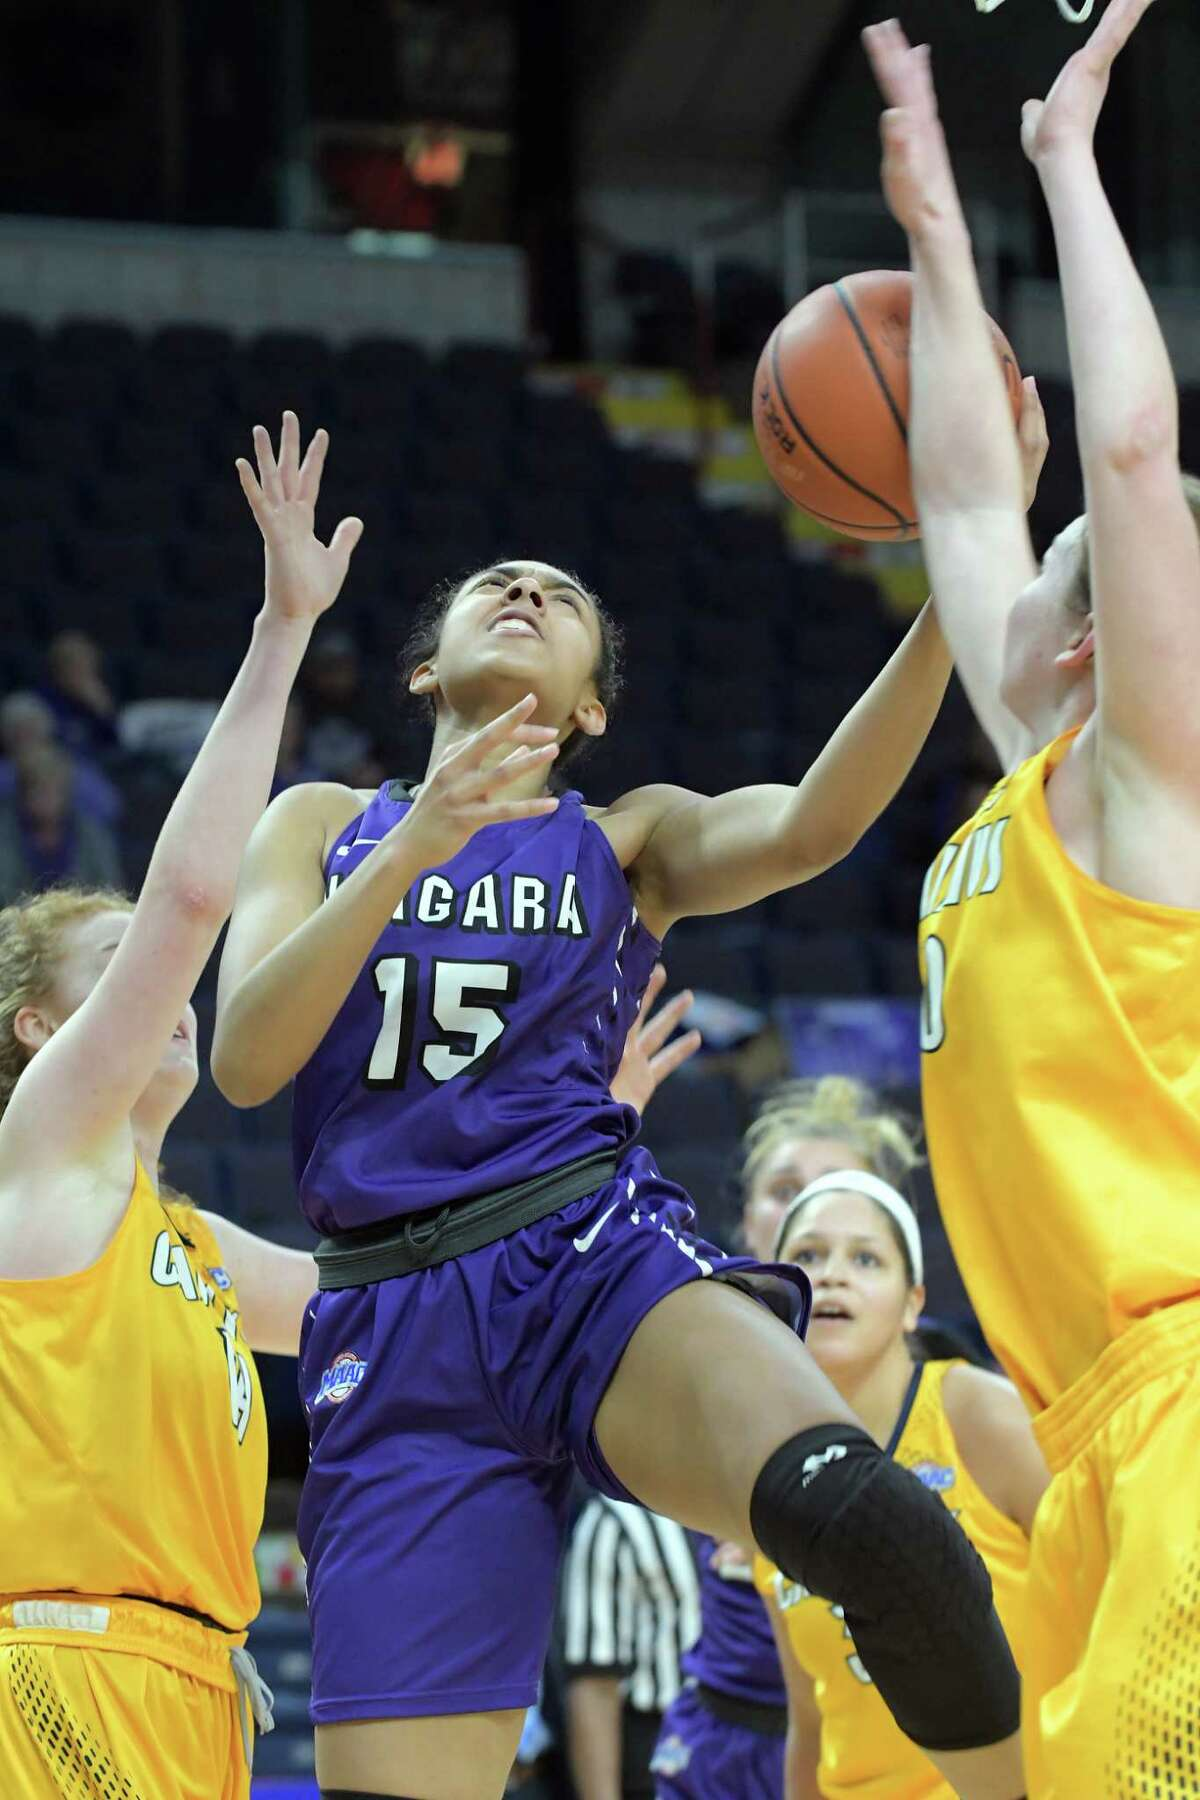 Adila Gathers of Niagara drives to the basket through Canisius players during their MAAC Basketball Tournament game at the Times Union Center on Thursday, March 2, 2017, in Albany, N.Y. (Paul Buckowski / Times Union)